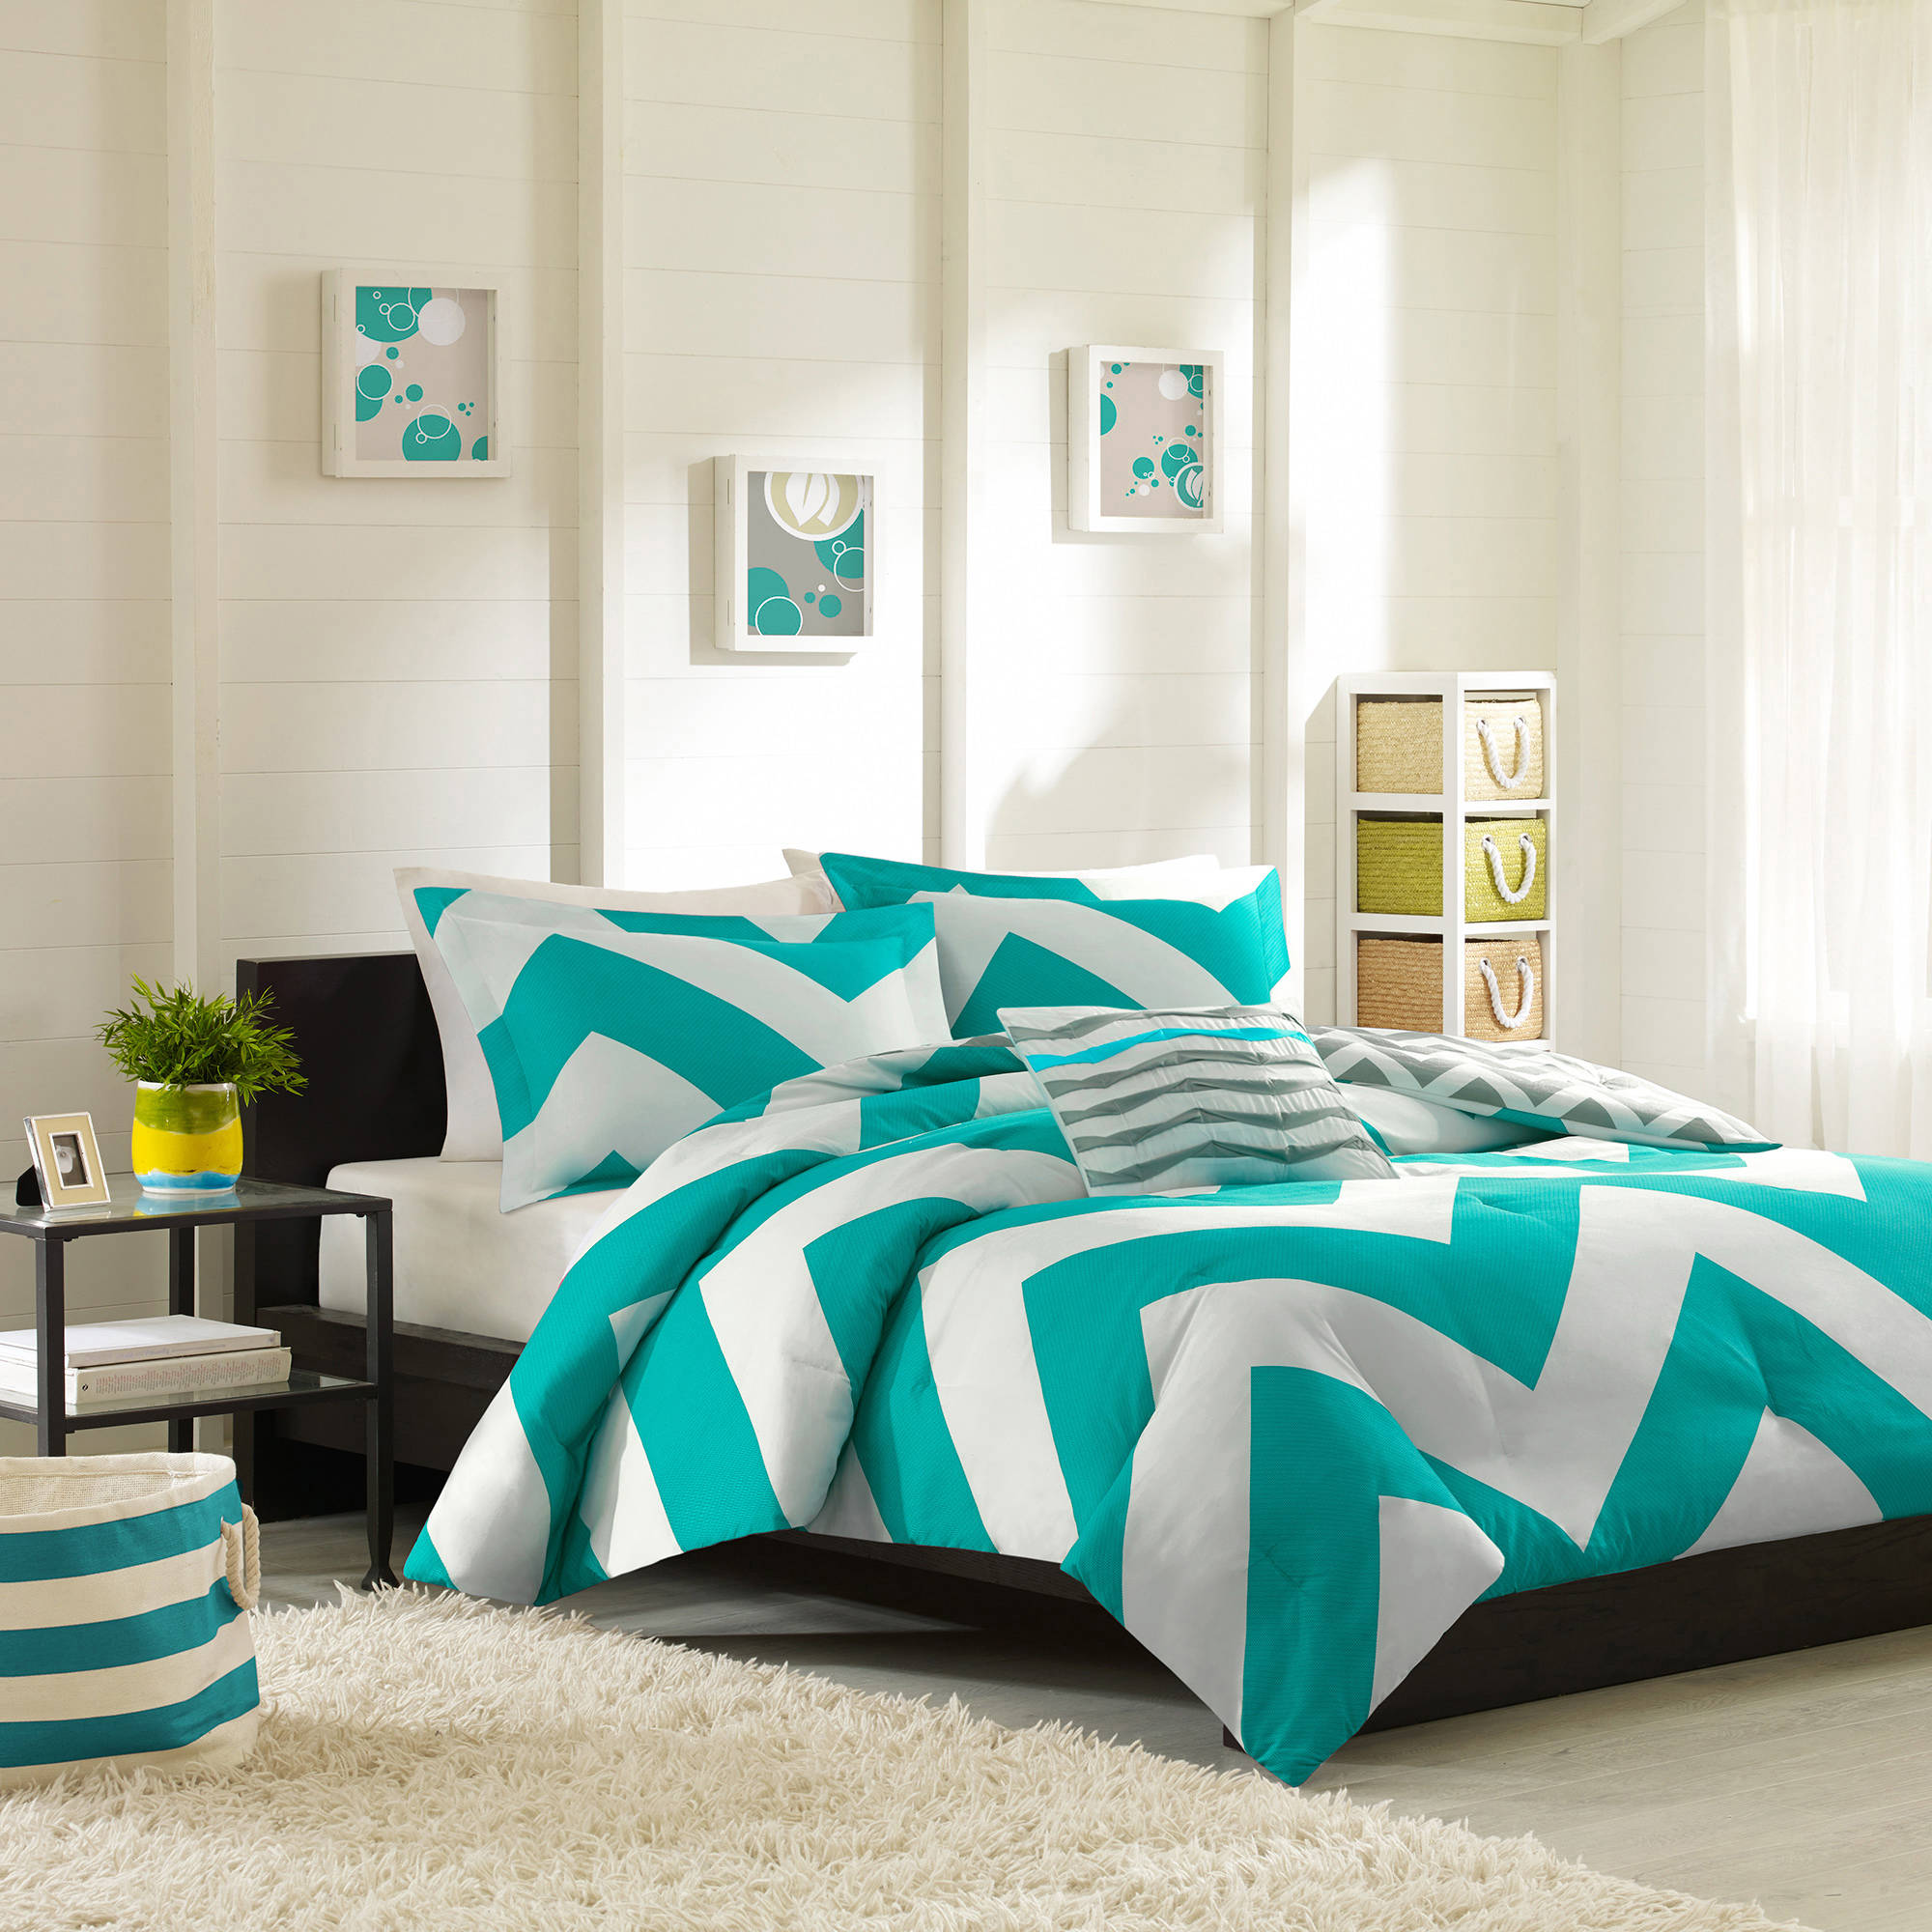 Queen Size Bed Sets | Kmart Promo Code | Kmart Bed Sets